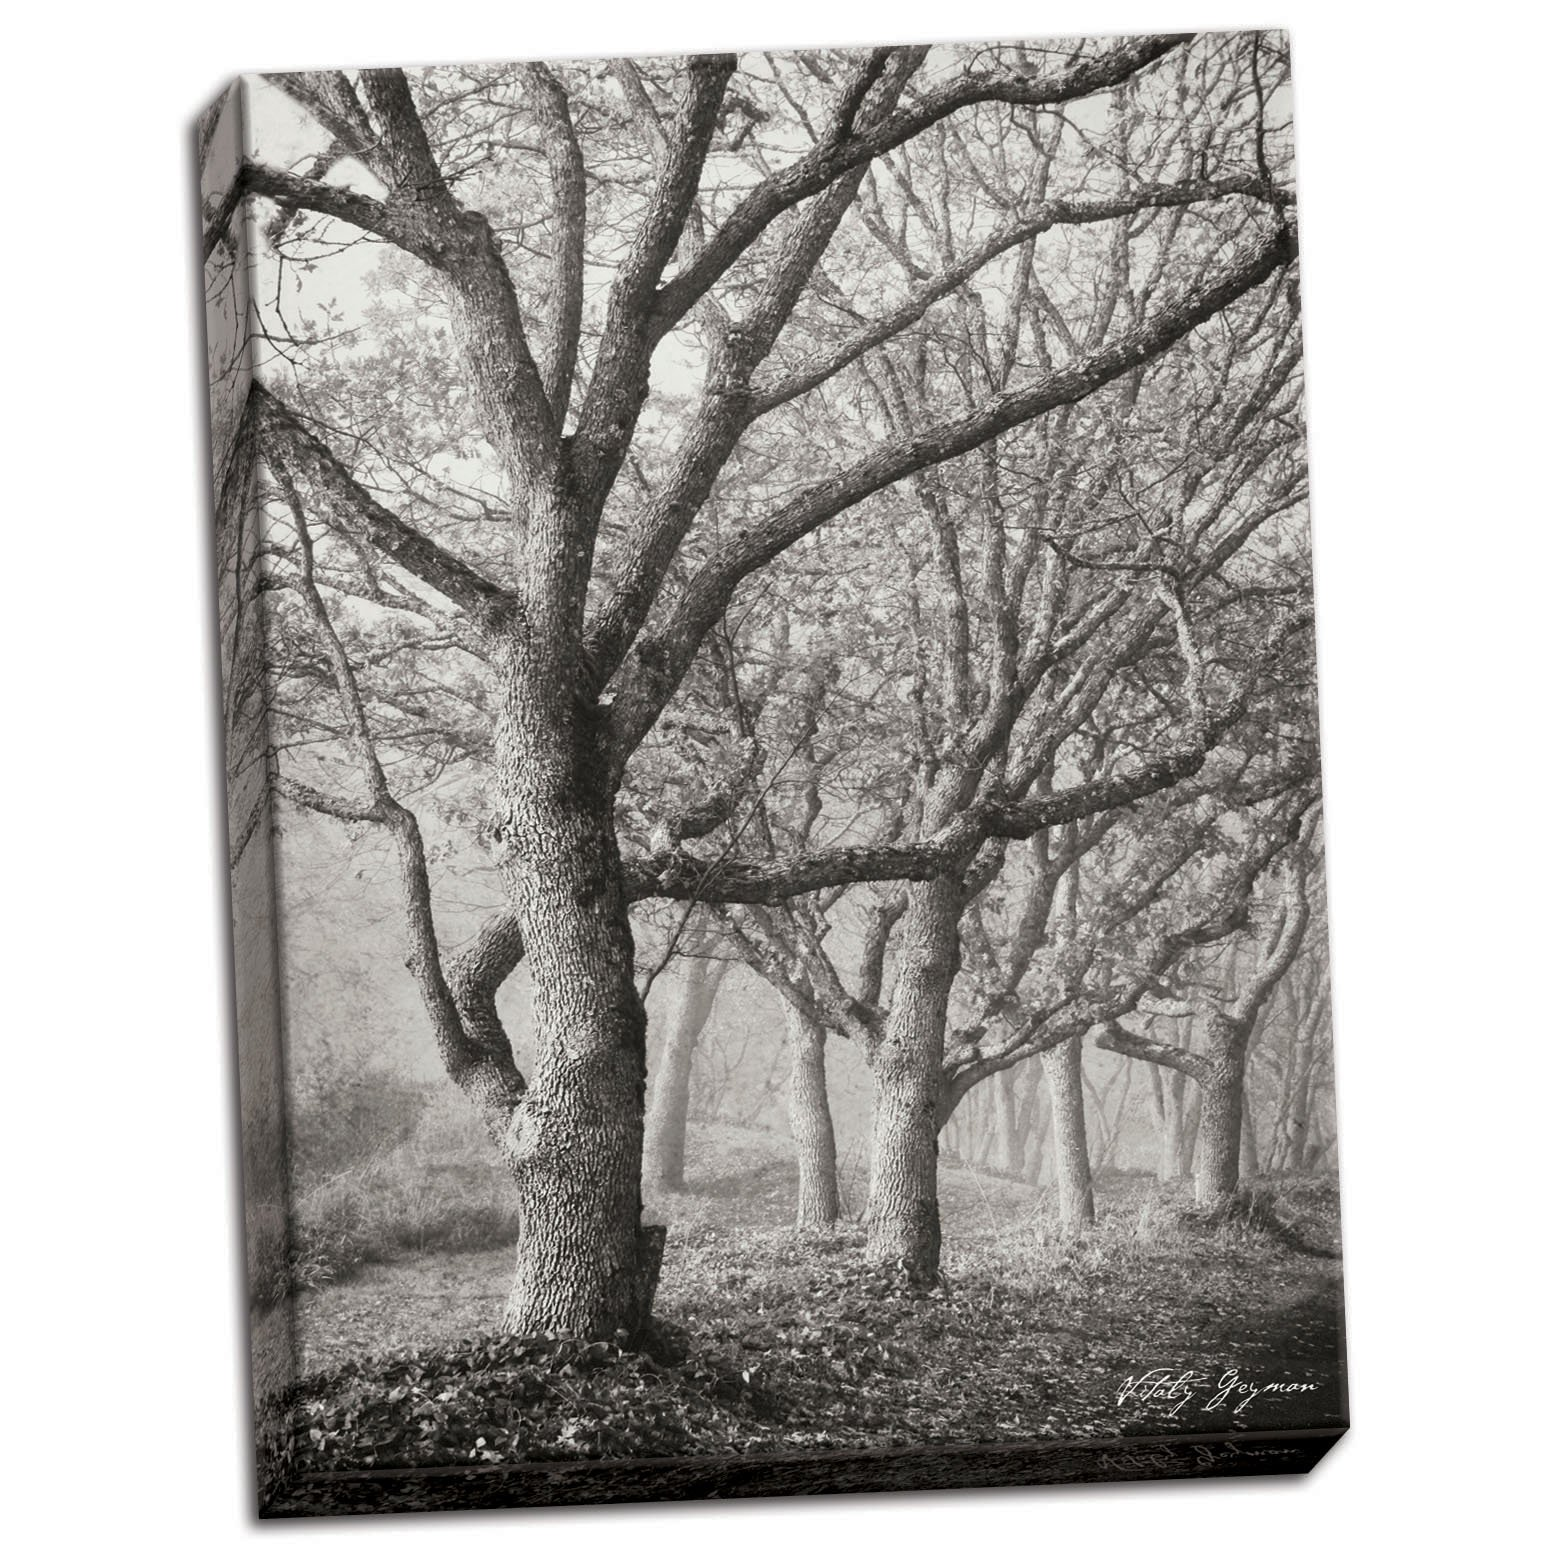 Tree in the Mist V B&W, Fine Art Photograph By: Vitaly Geyman; One 18x24in Hand-Stretched Canvas